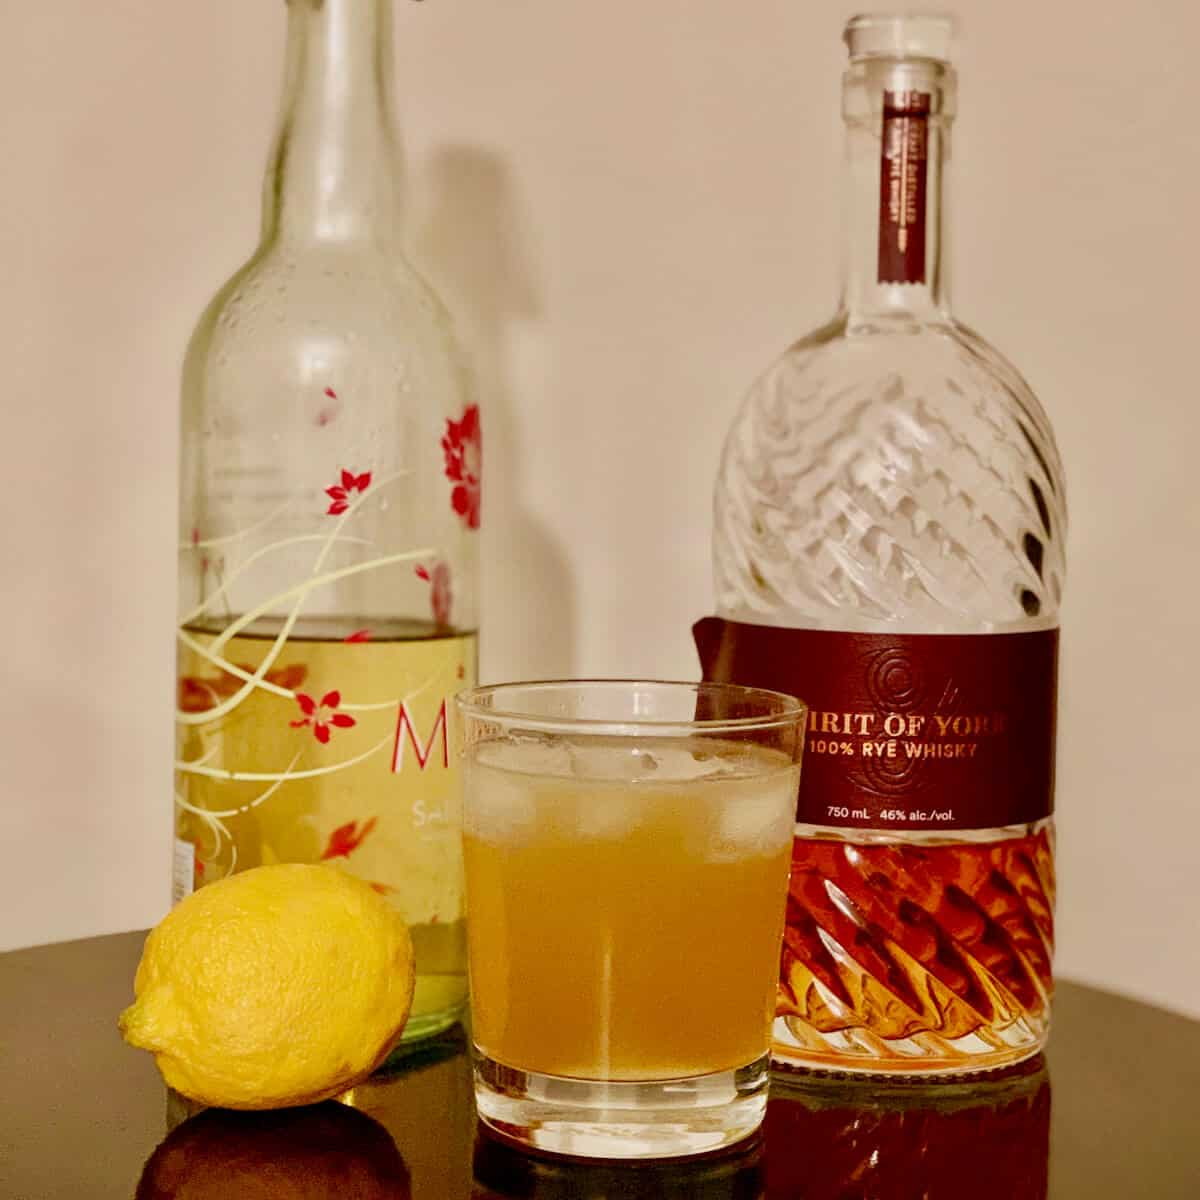 Limoncello Rye Sour ingredients - Homemade Limoncello & Spirit of York Rye Whiskey in bottles with a lemon and drink in glass